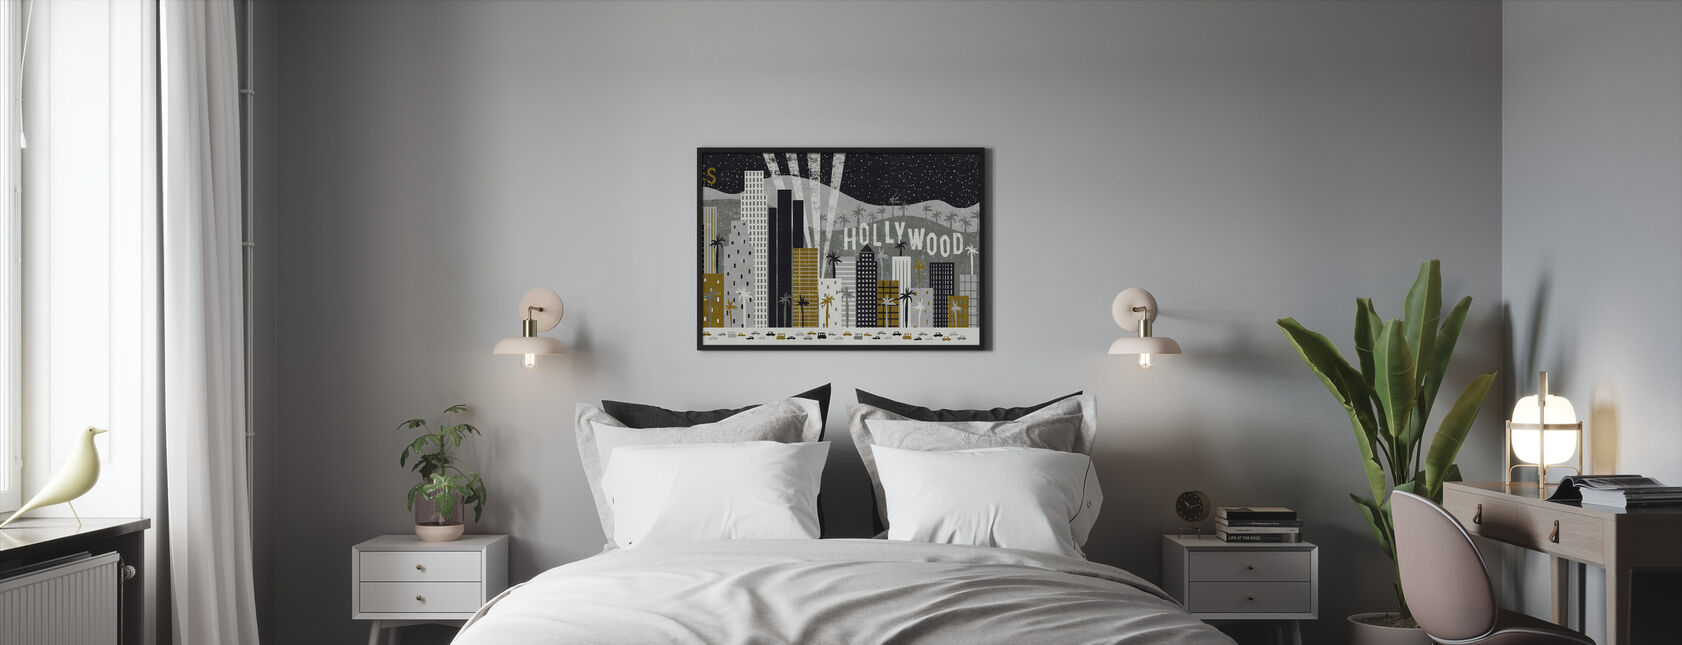 Hey Los Angeles - Framed print - Bedroom